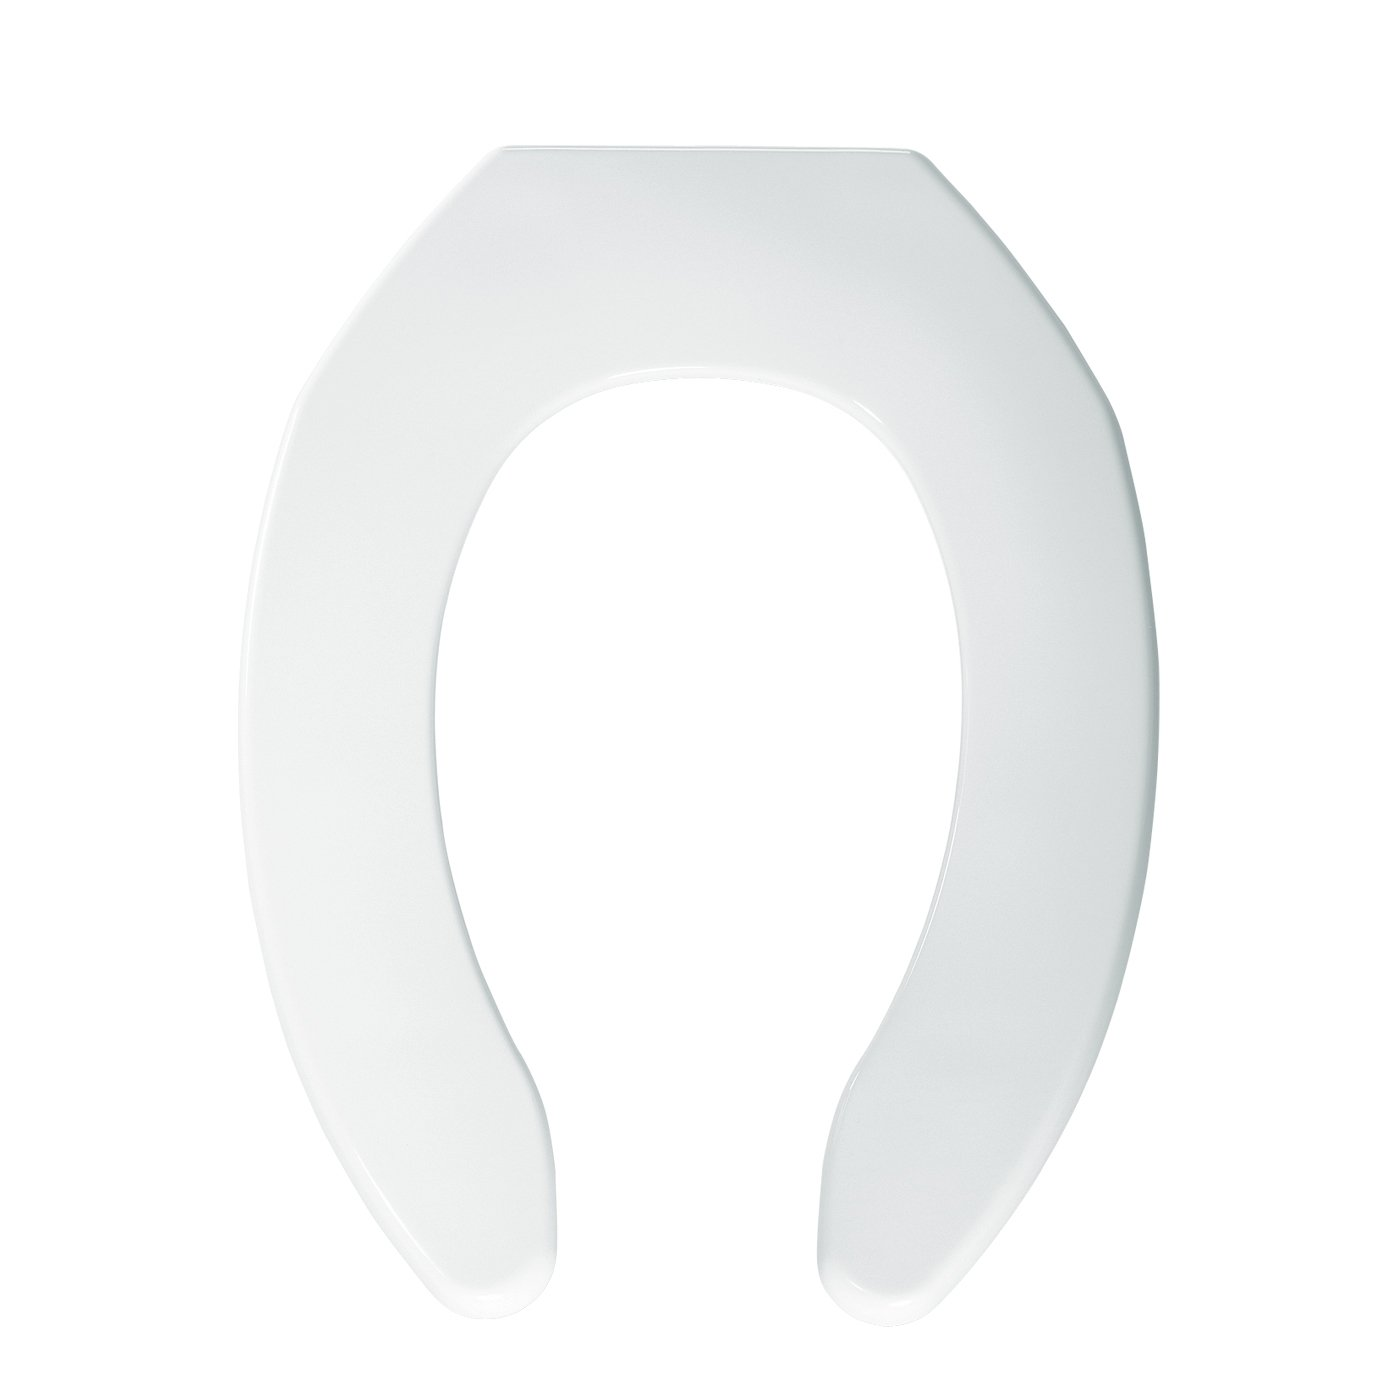 Bemis 1055000 Plastic Elongated Toilet Seat Open Front Less Cover, White by Bemis (Image #1)